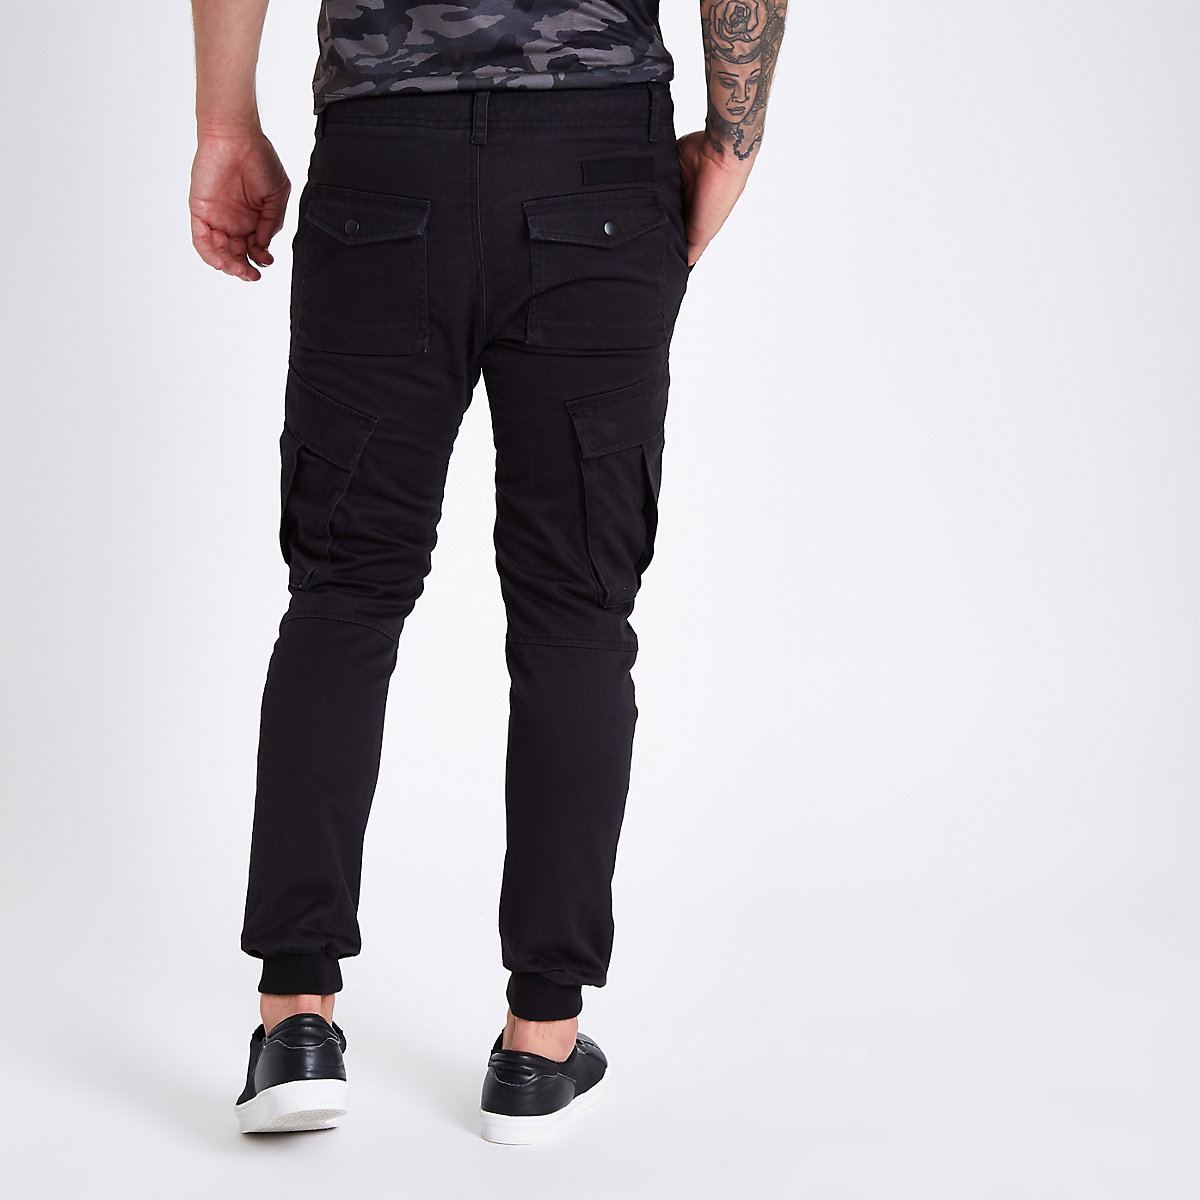 Black tapered cargo trousers - Casual Trousers - Trousers - men ccb0ba63fb0